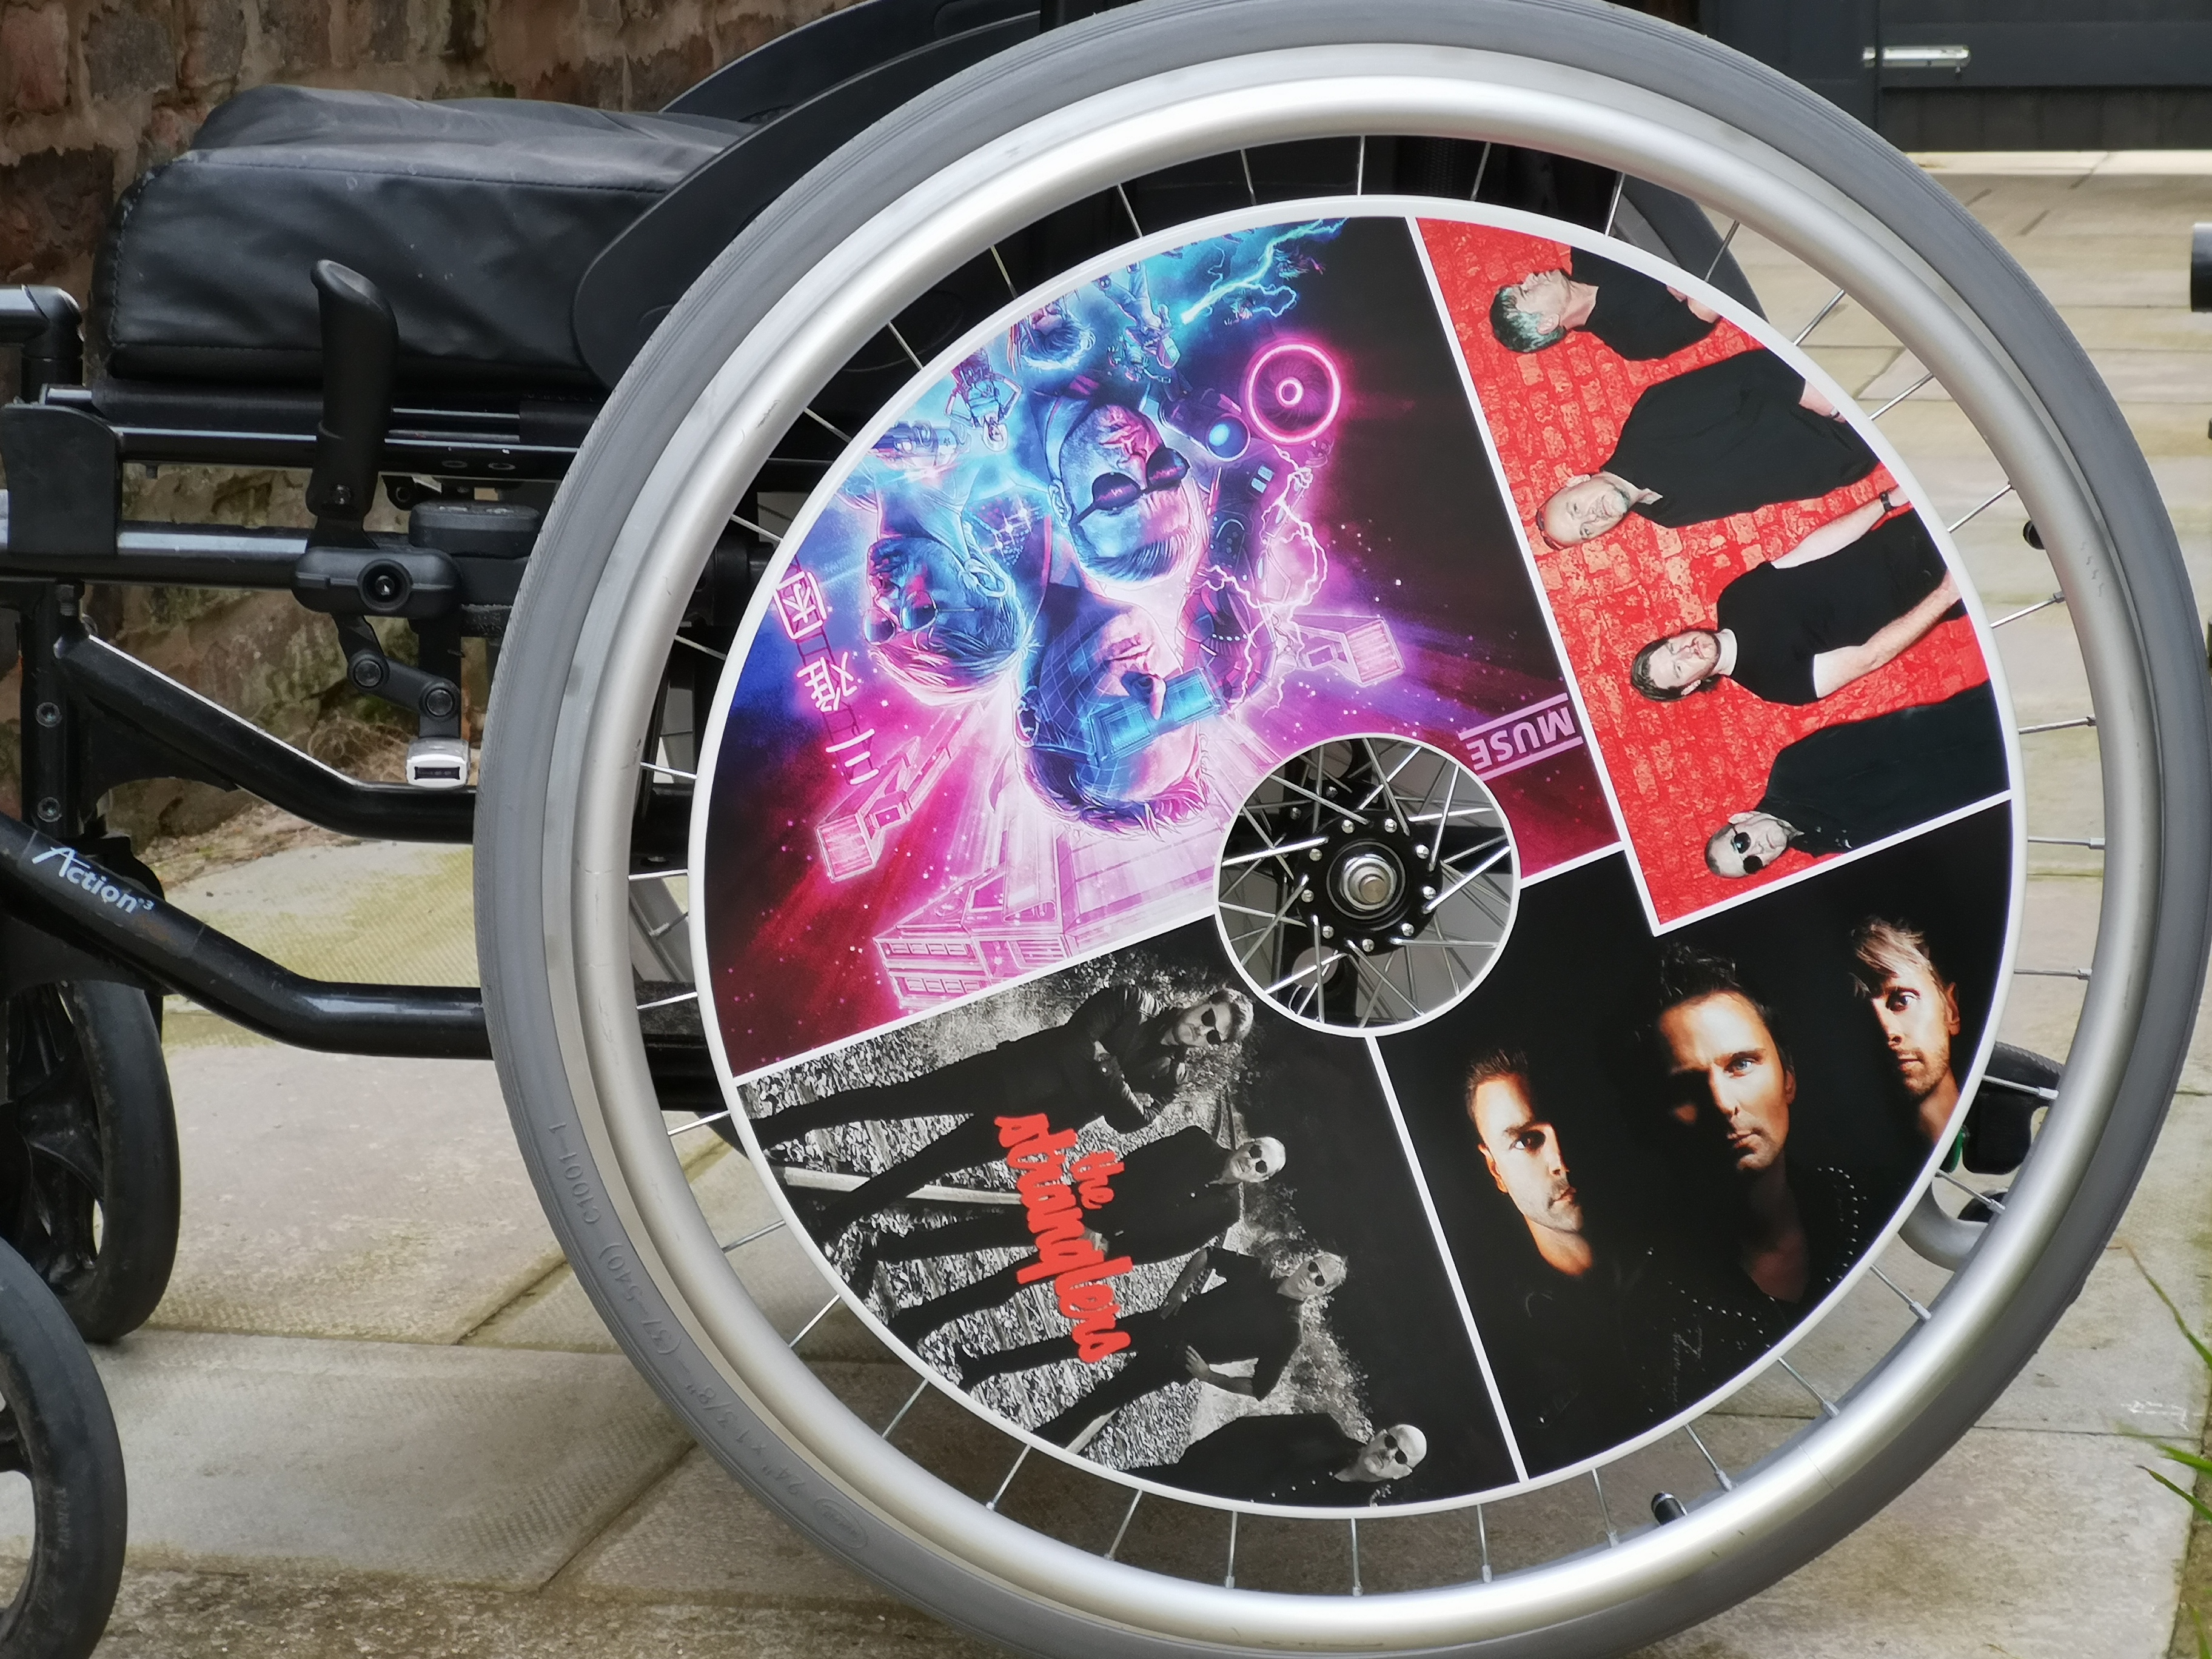 The Stranglers and Muse SpokeGuards wheel covbers